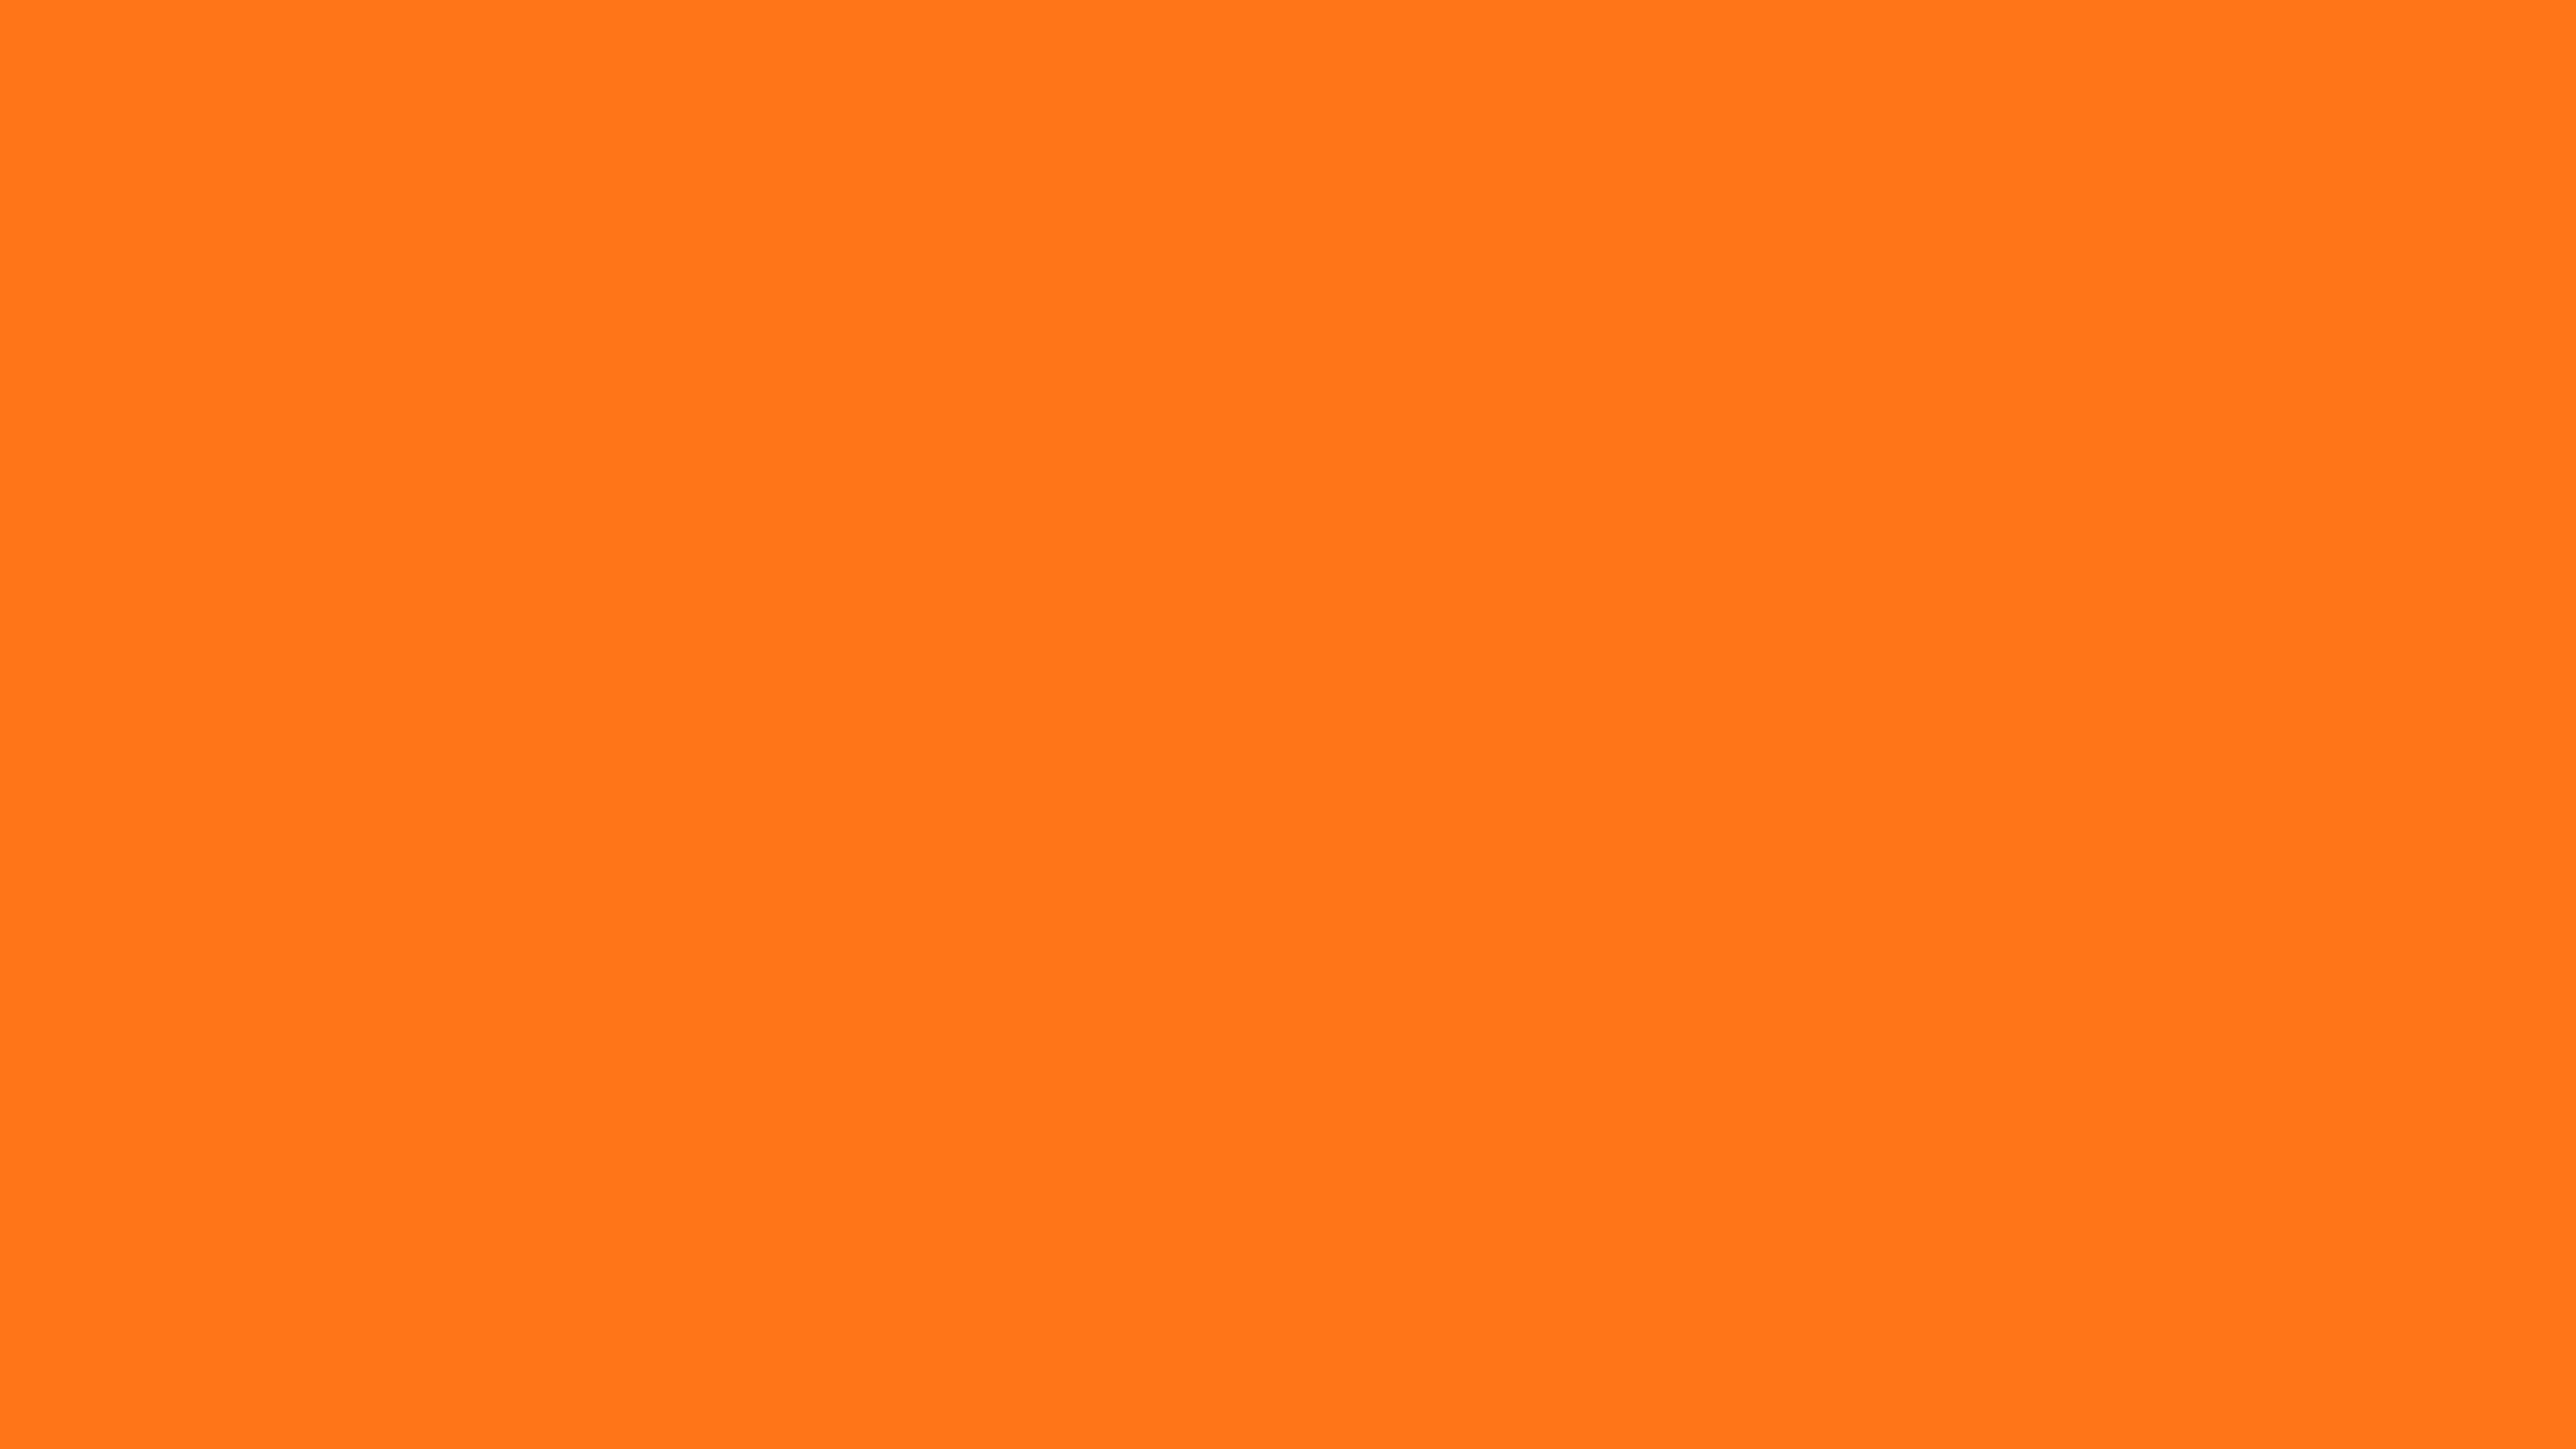 5120x2880 Pumpkin Solid Color Background